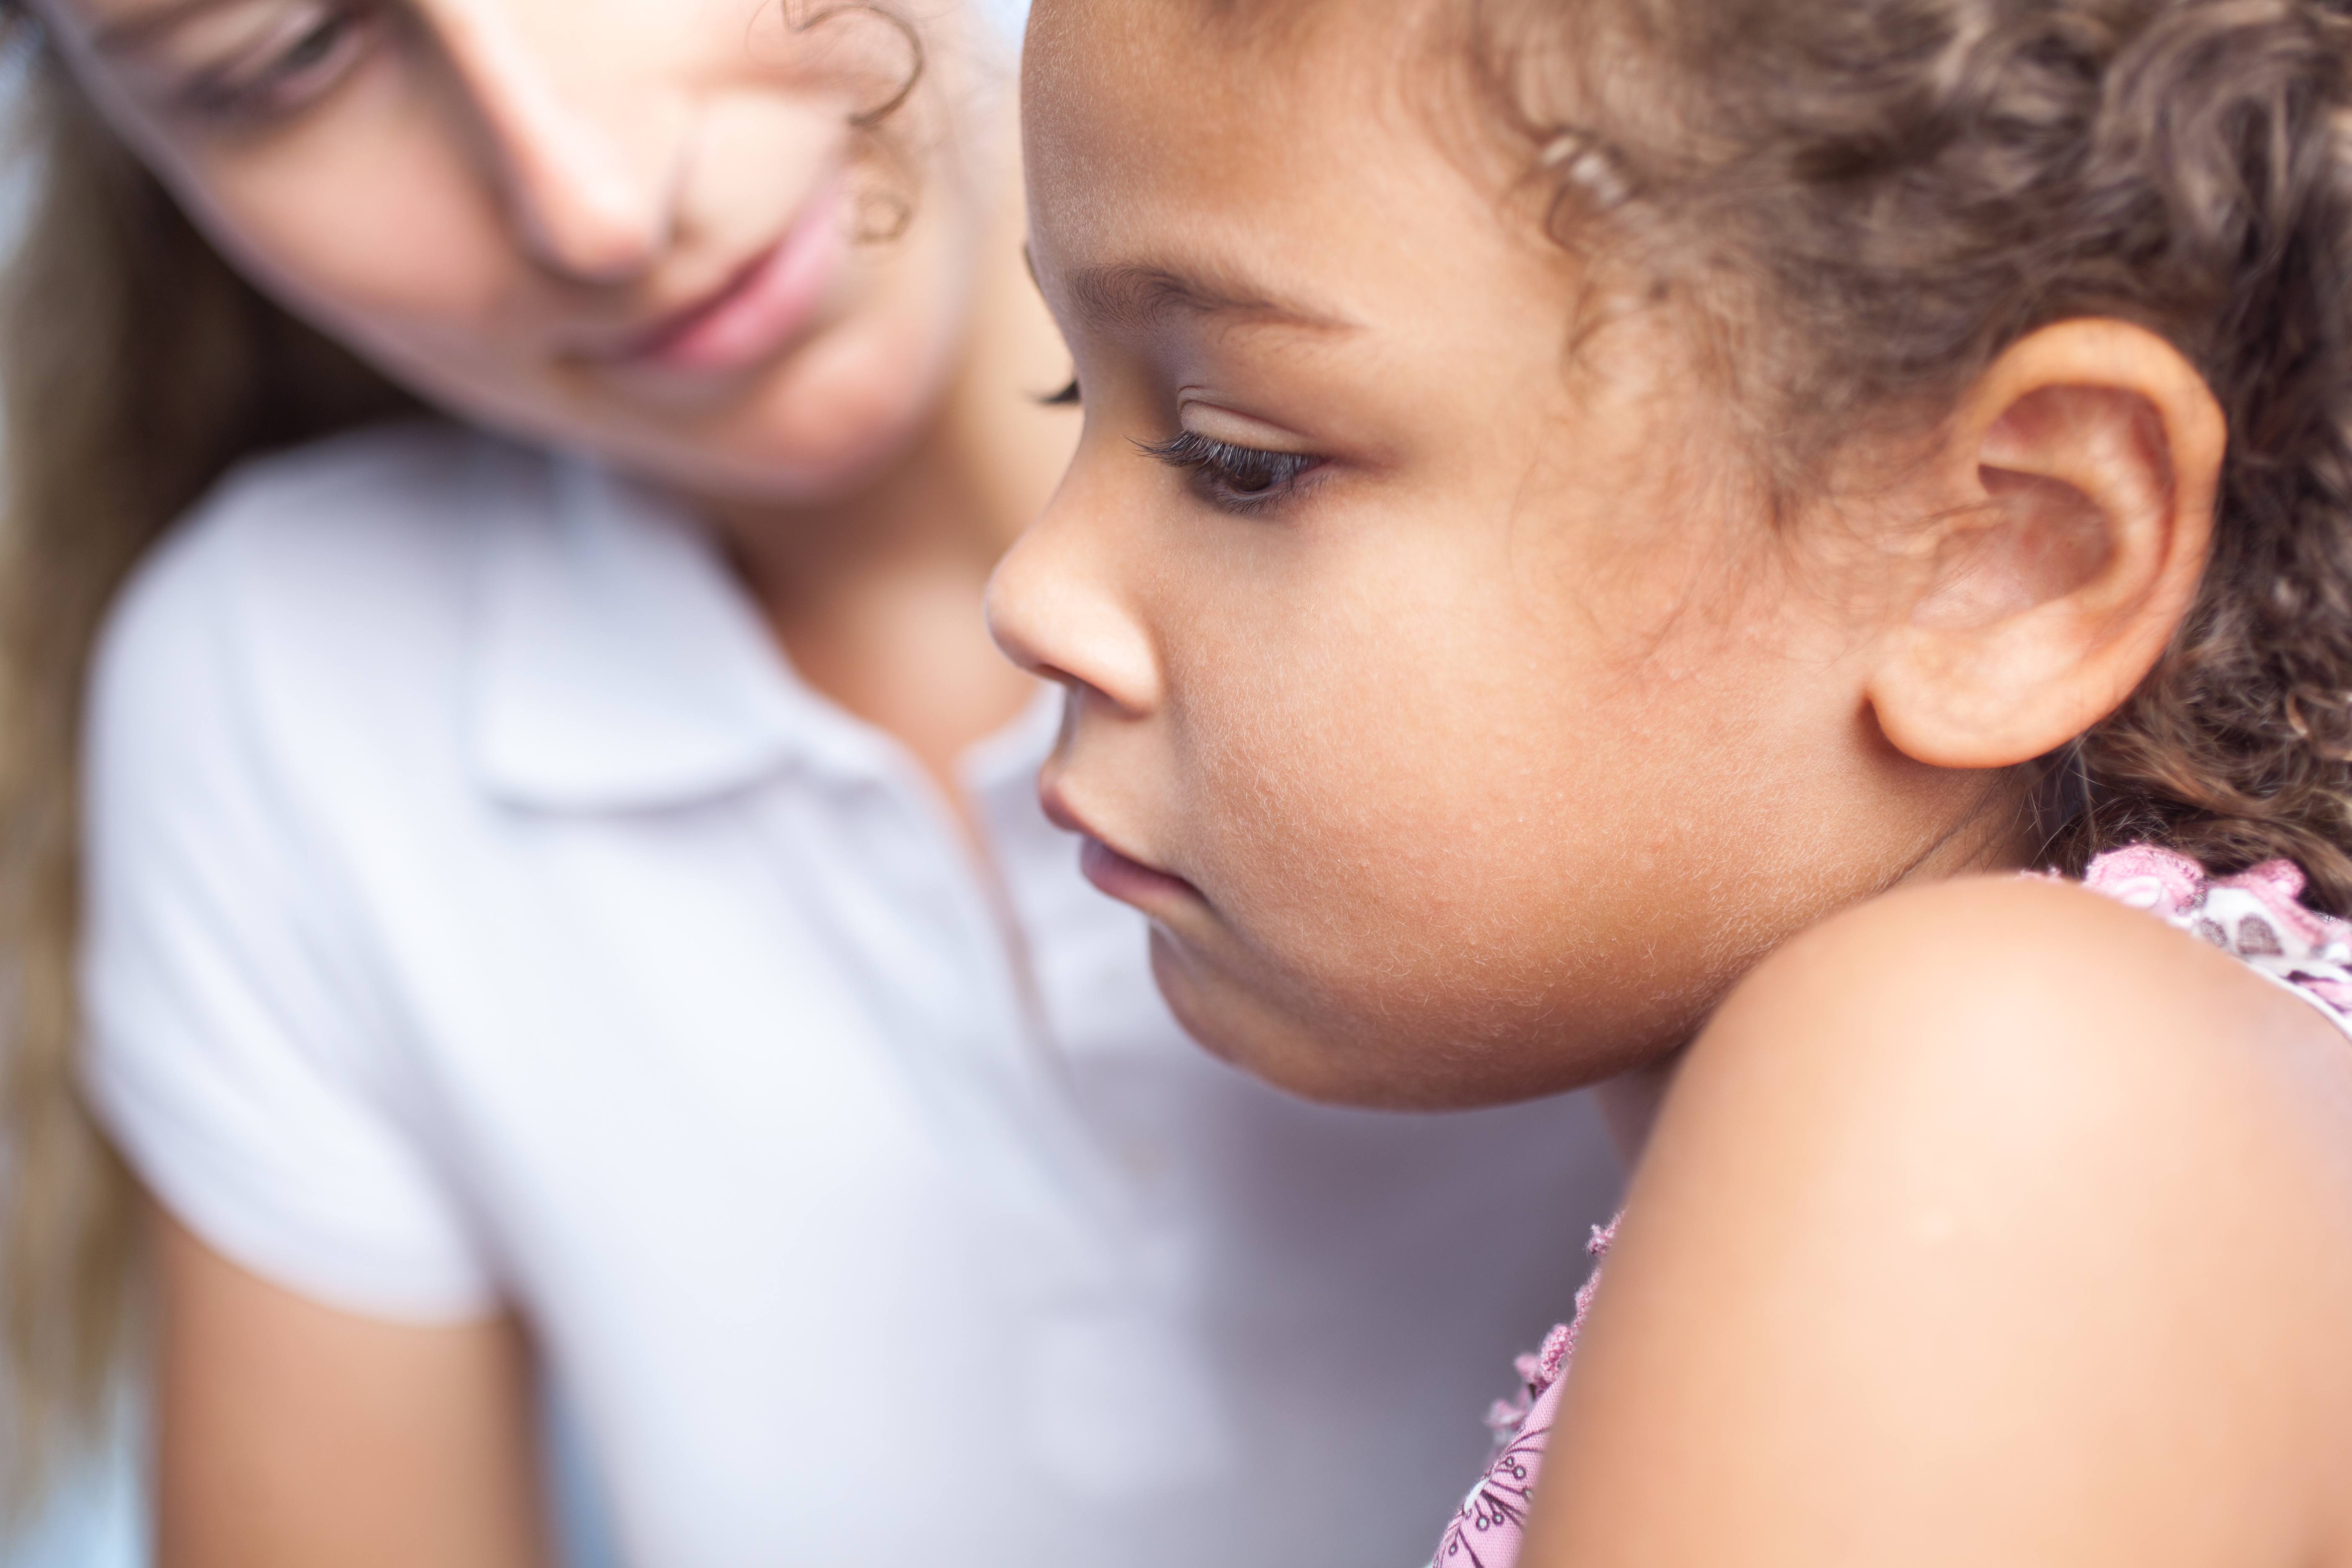 Addressing Trauma through Quality Early Learning Experiences